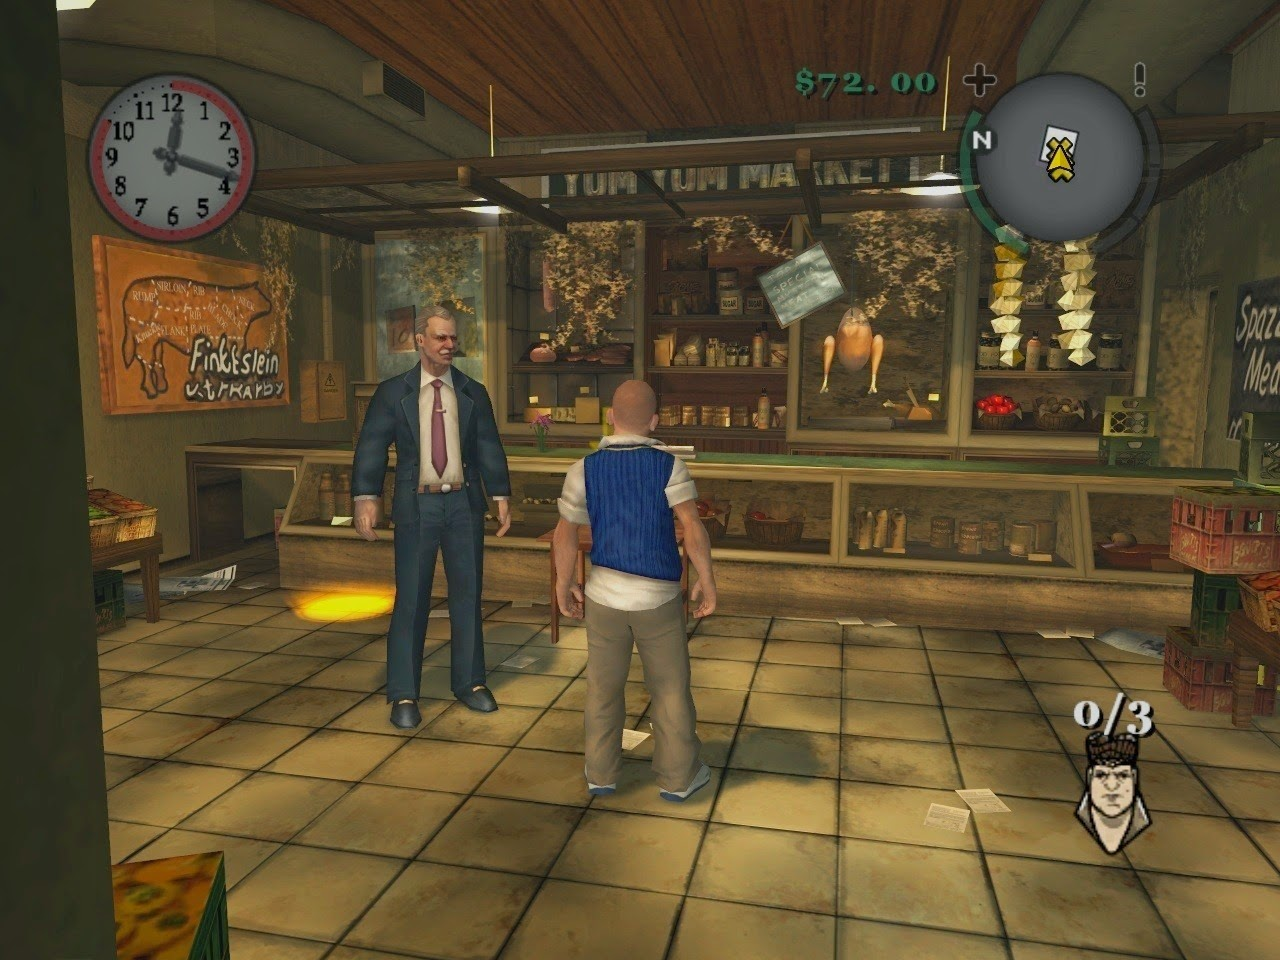 Bully scholarship edition iso download: flavilap.